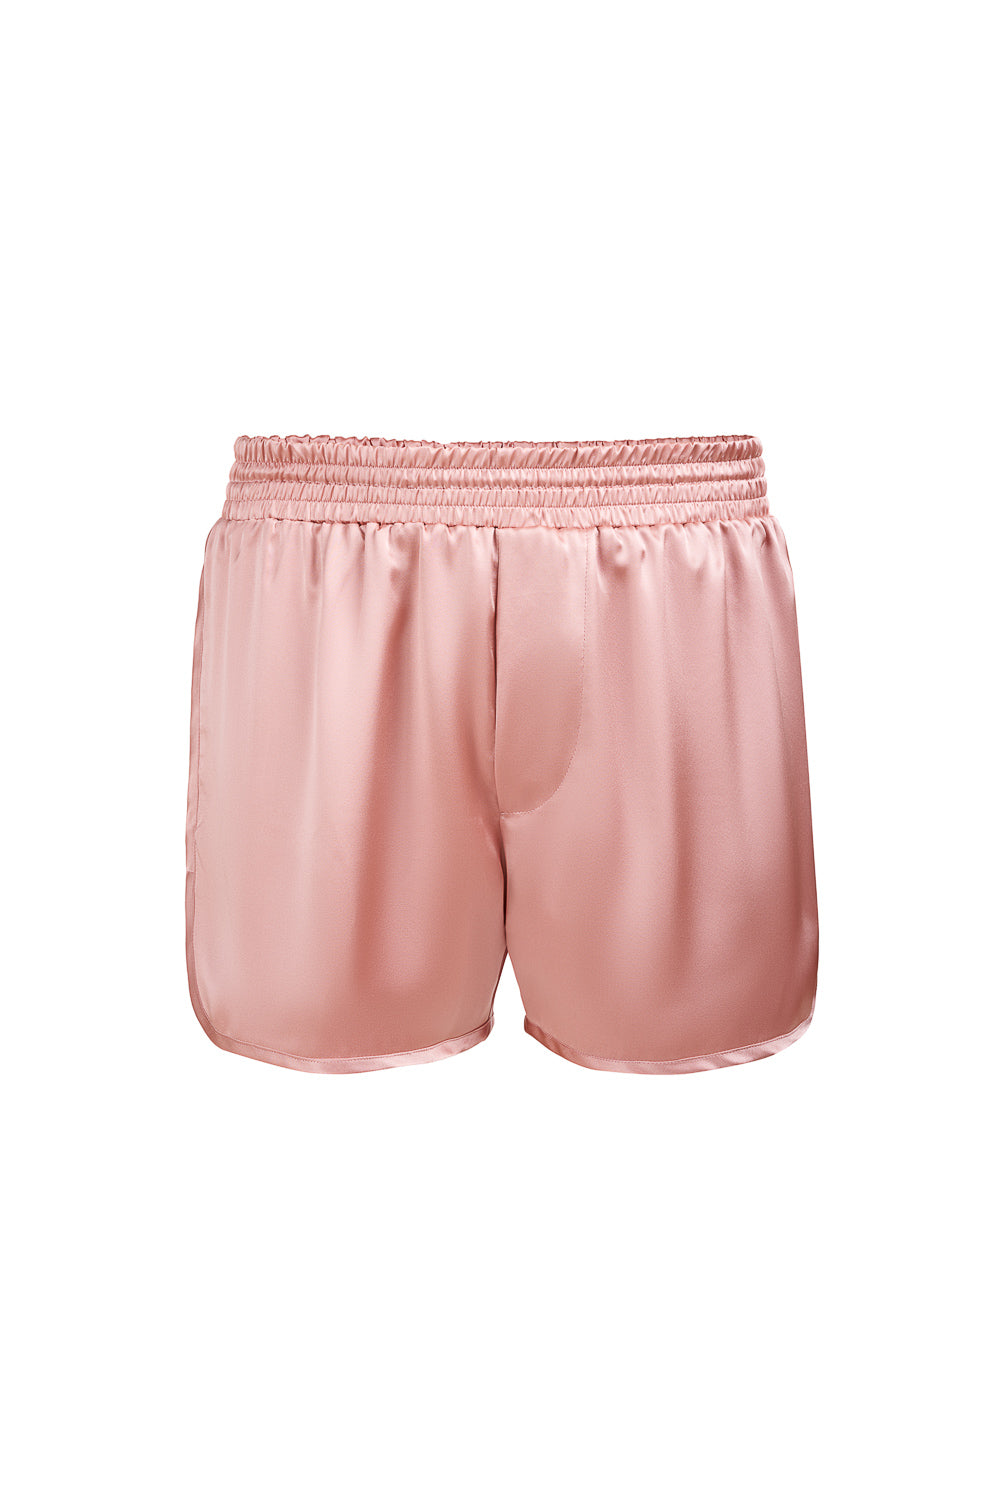 Silk Boxer Shorts For Him- silk&jam